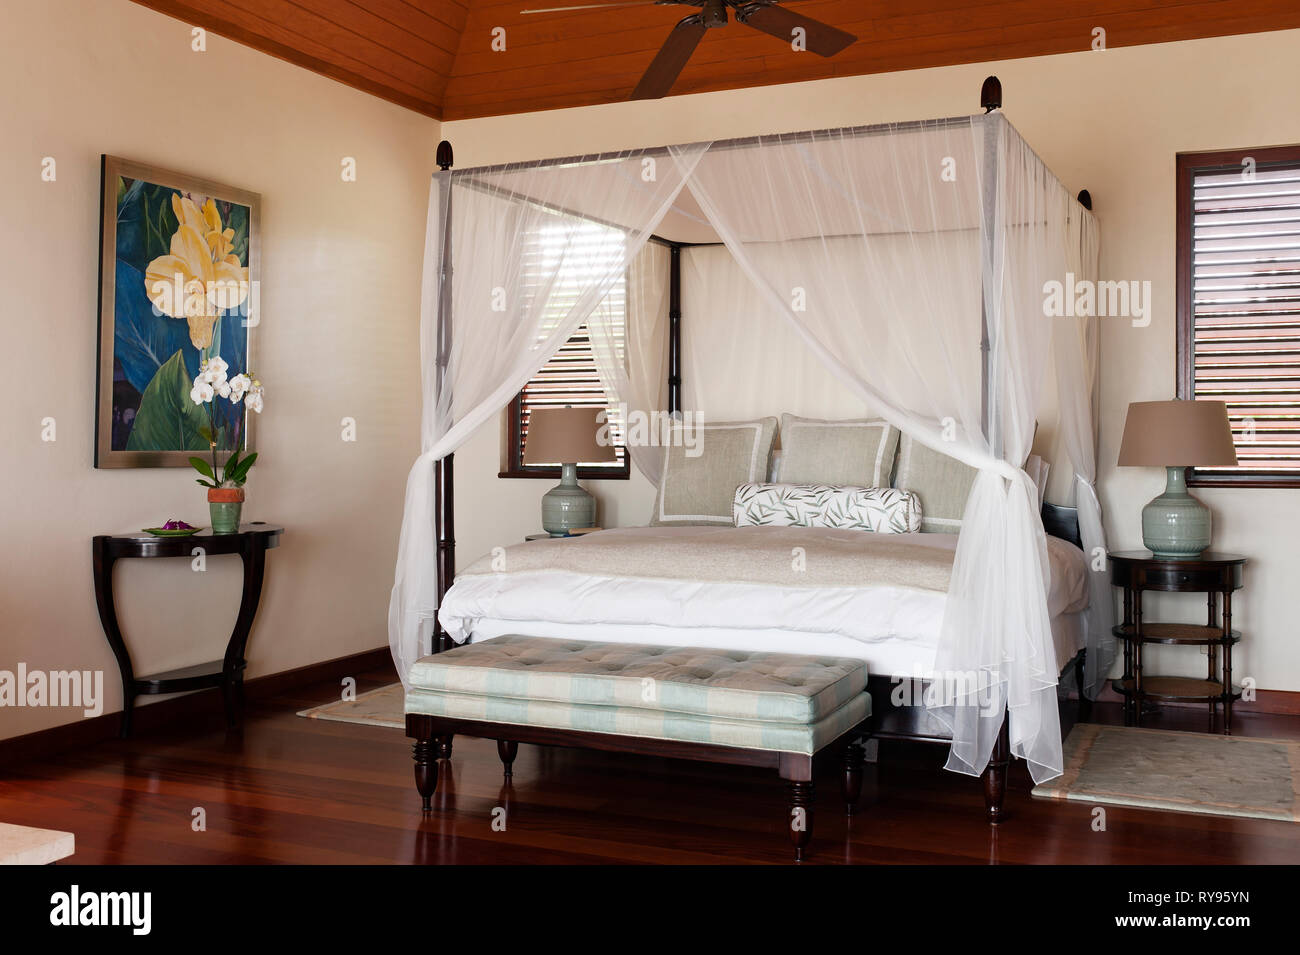 Rustic Bedroom With Four Poster Bed In Tamarind Cove Antigua Stock Photo Alamy